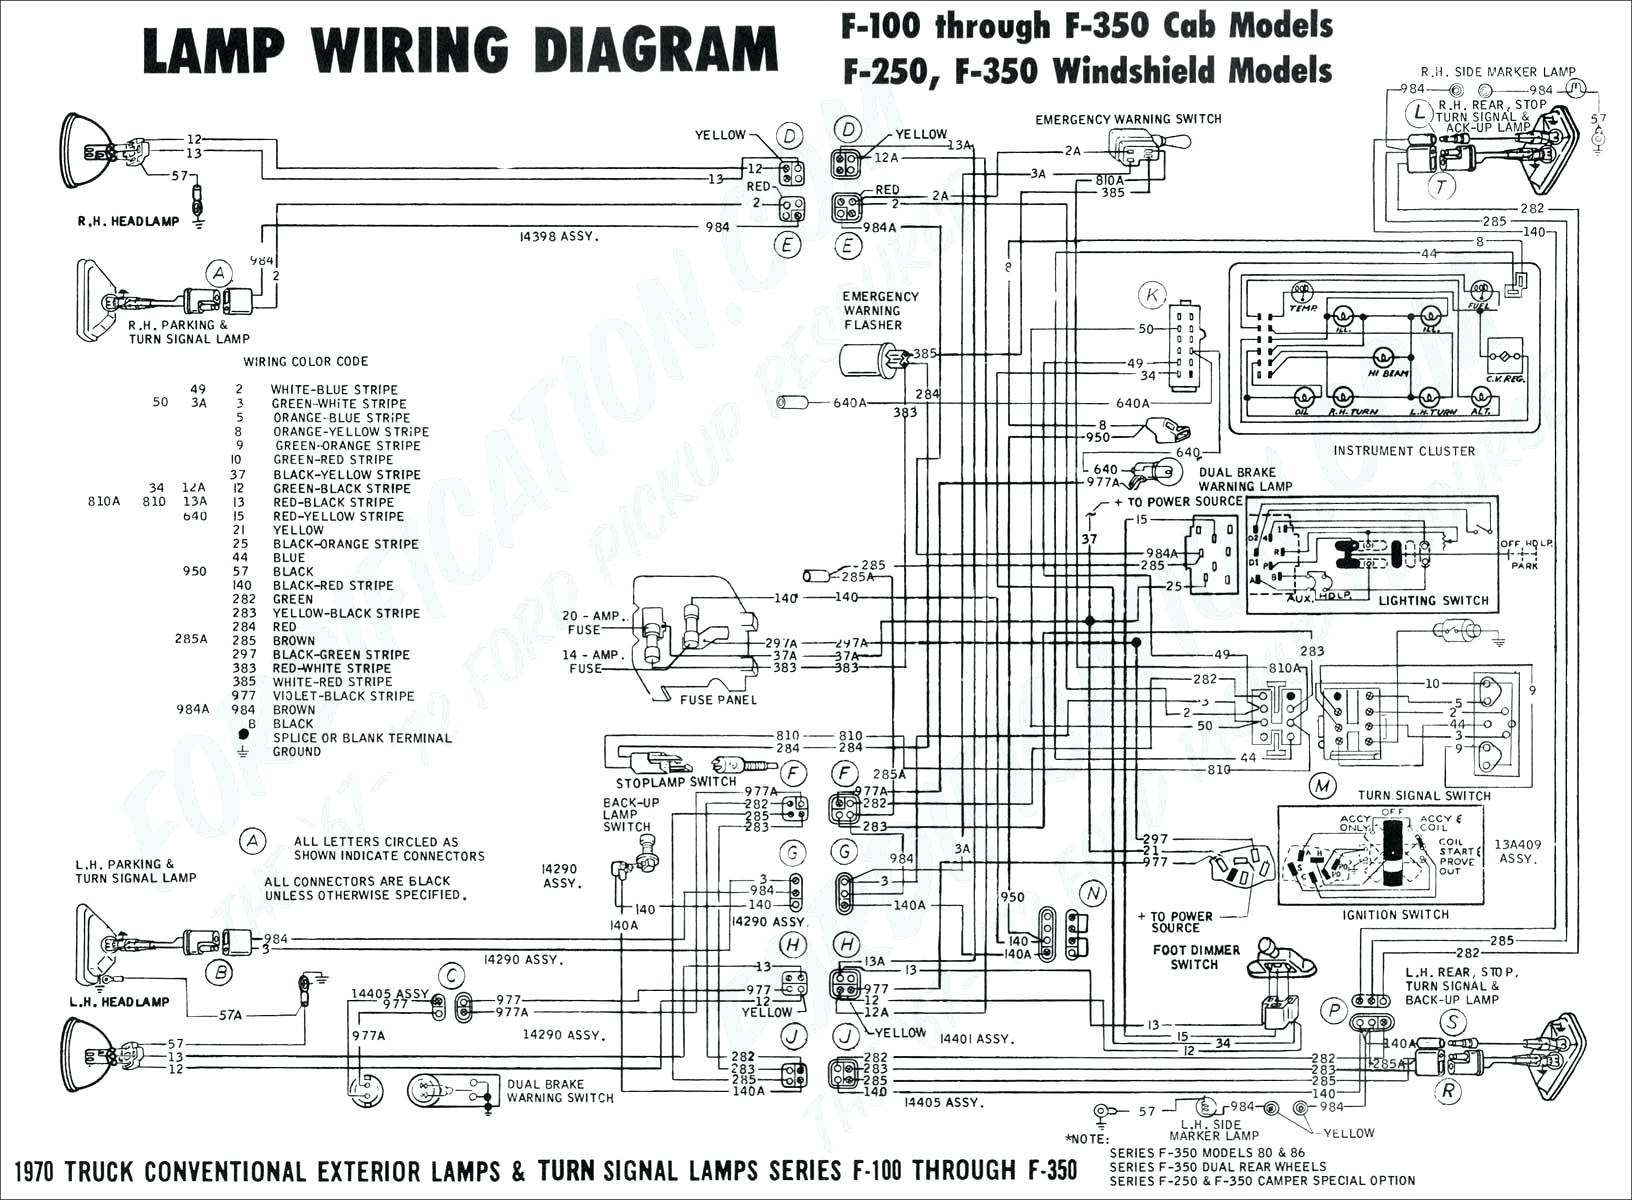 Ford F53 Trailer Wiring Diagram | Wiring Diagram - Ford F53 Motorhome Chassis Wiring Diagram